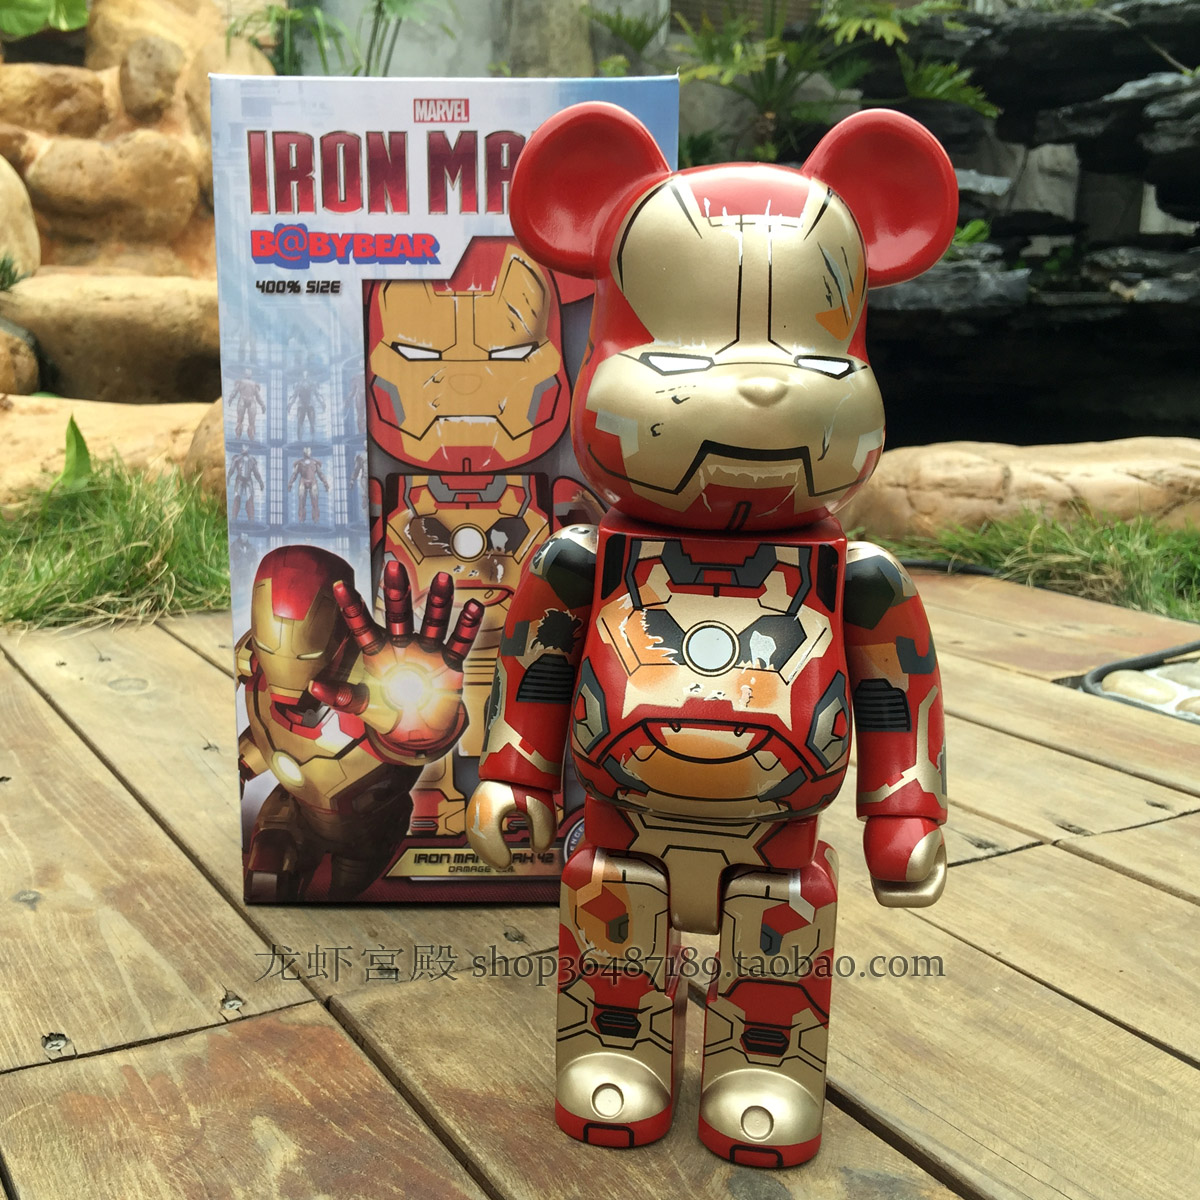 "11""28cm 400% Marvel Movie Iron Man Bearbrick Medicom Toy Be@rbrick Fashion Toy With Retail Box(China (Mainland))"